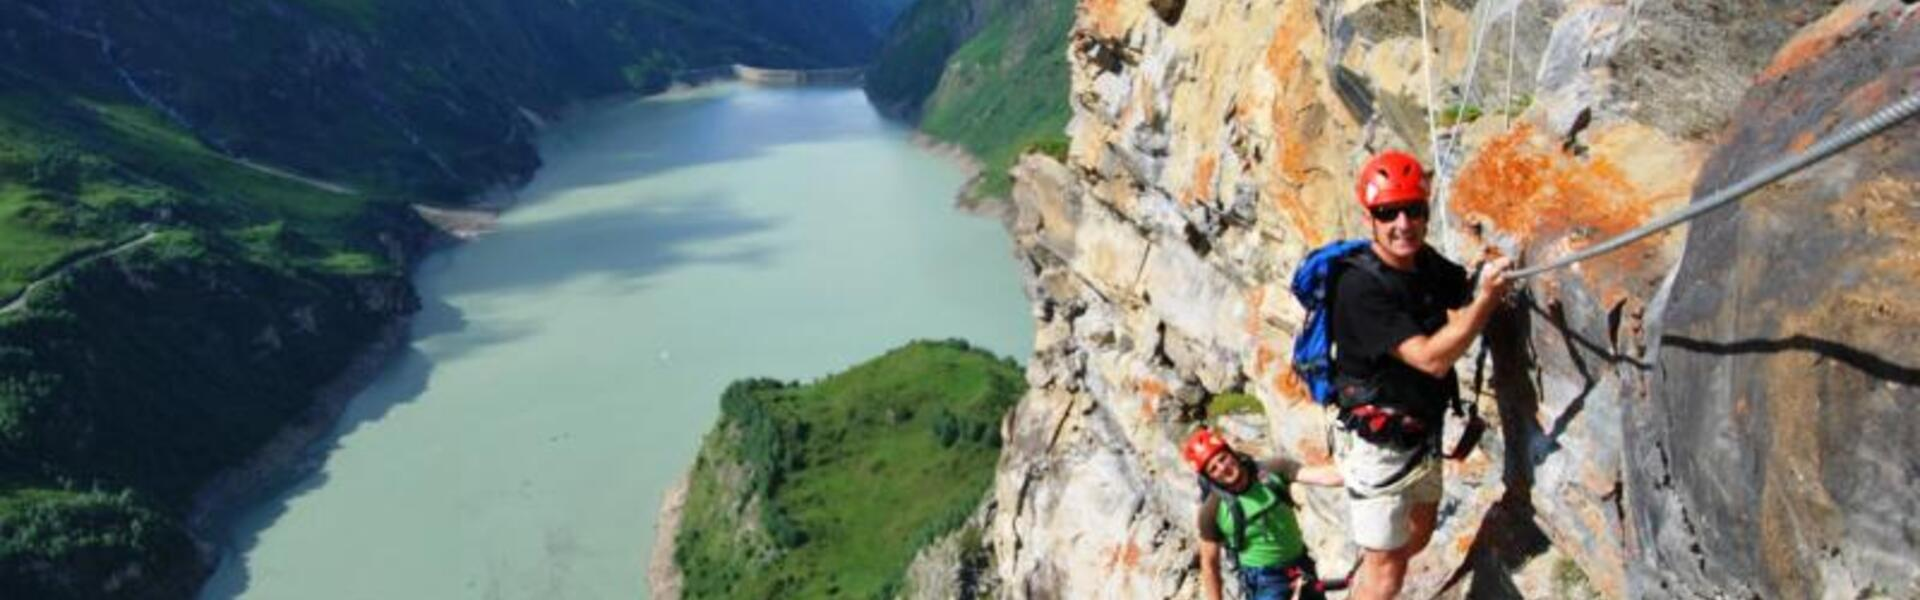 via ferrata vacationer